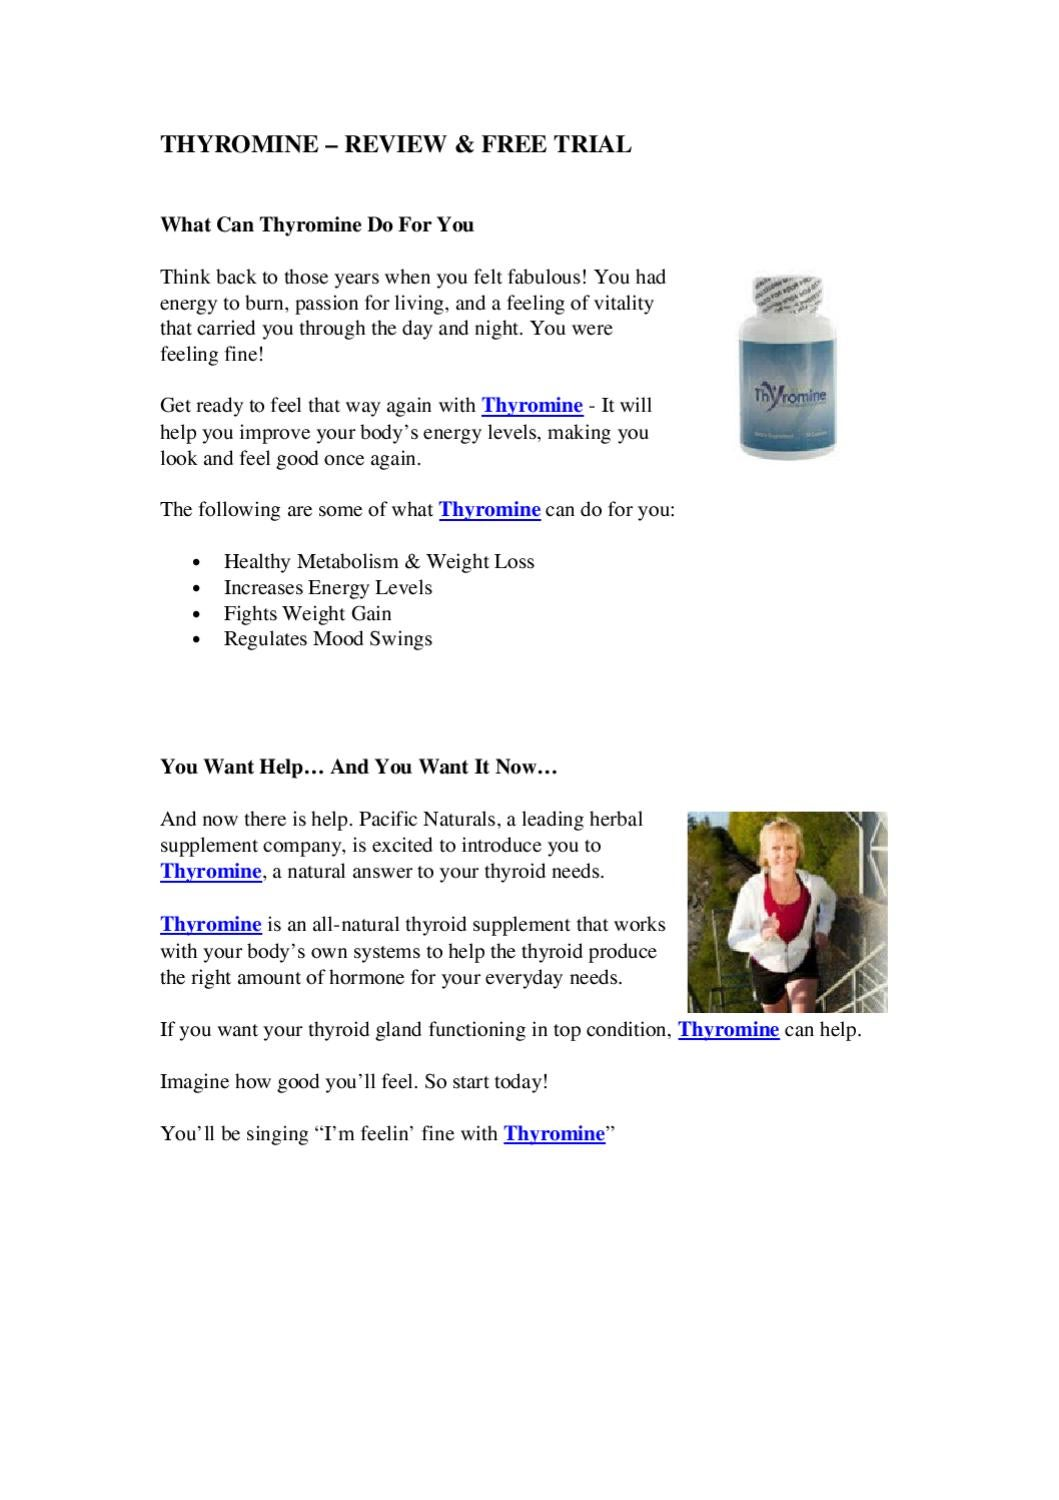 Thyromine Review Free Trial By Tiffany Brown Issuu